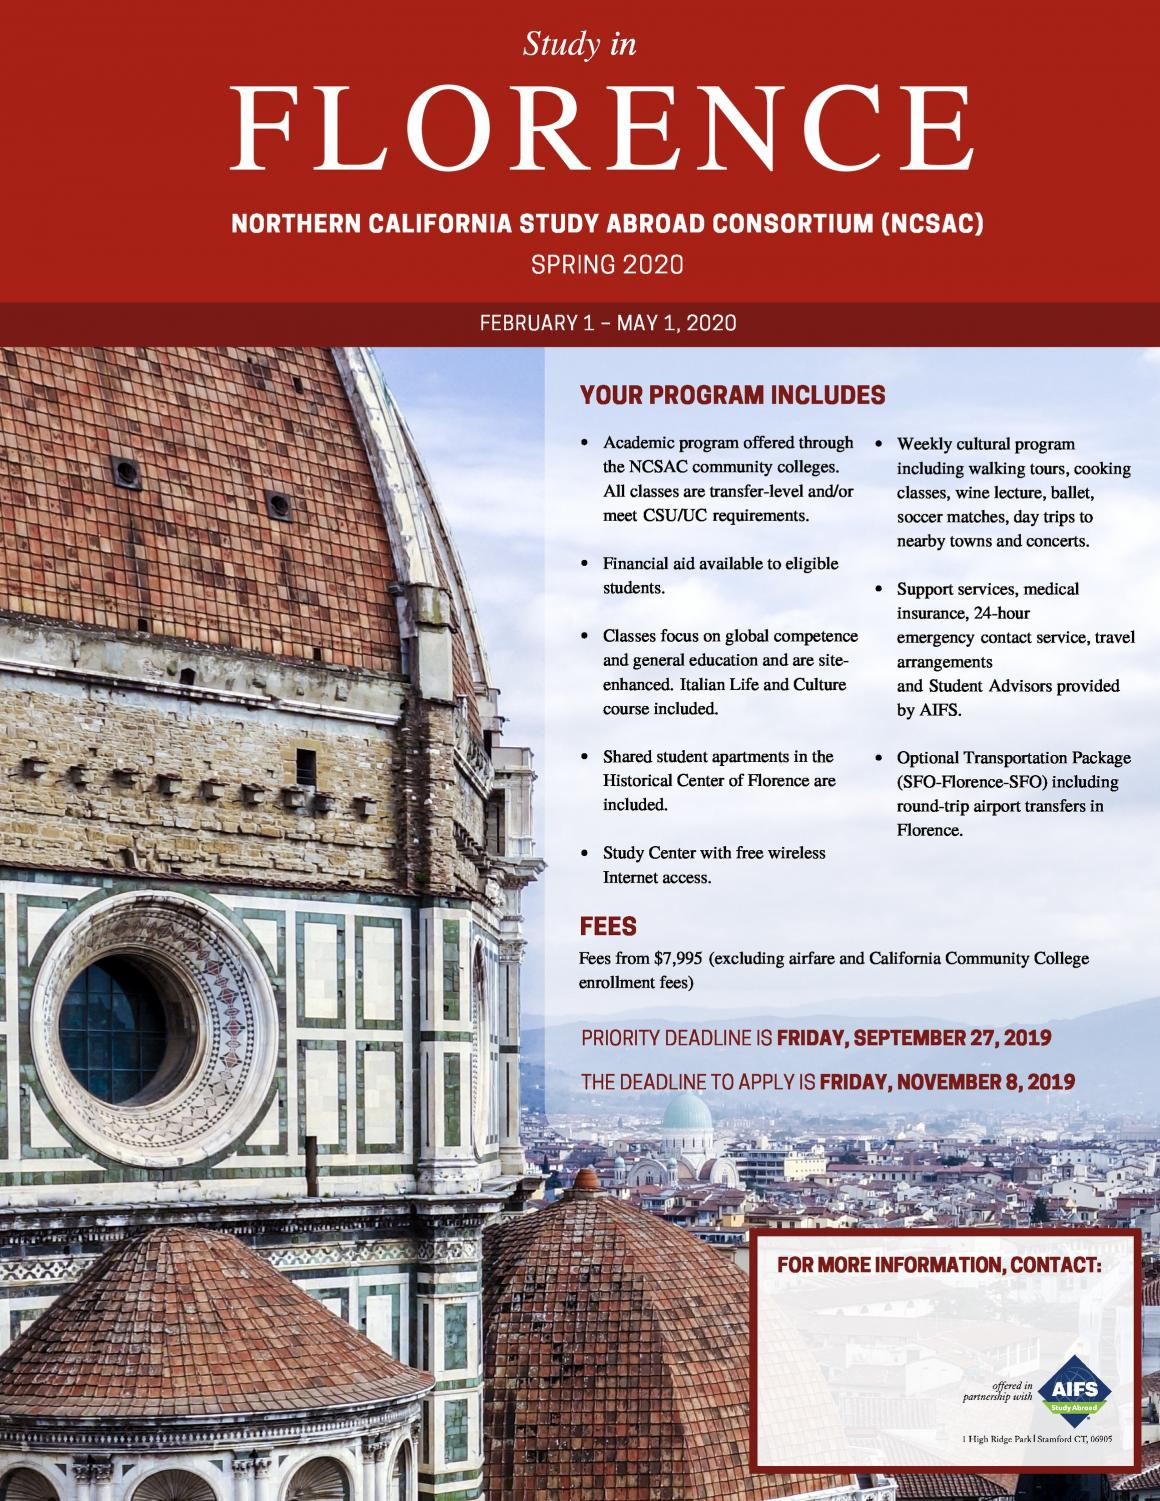 The SRJC Study Abroad program is a cooperative effort of multiple Northern California schools. This spring's program will be in Florence, Italy.